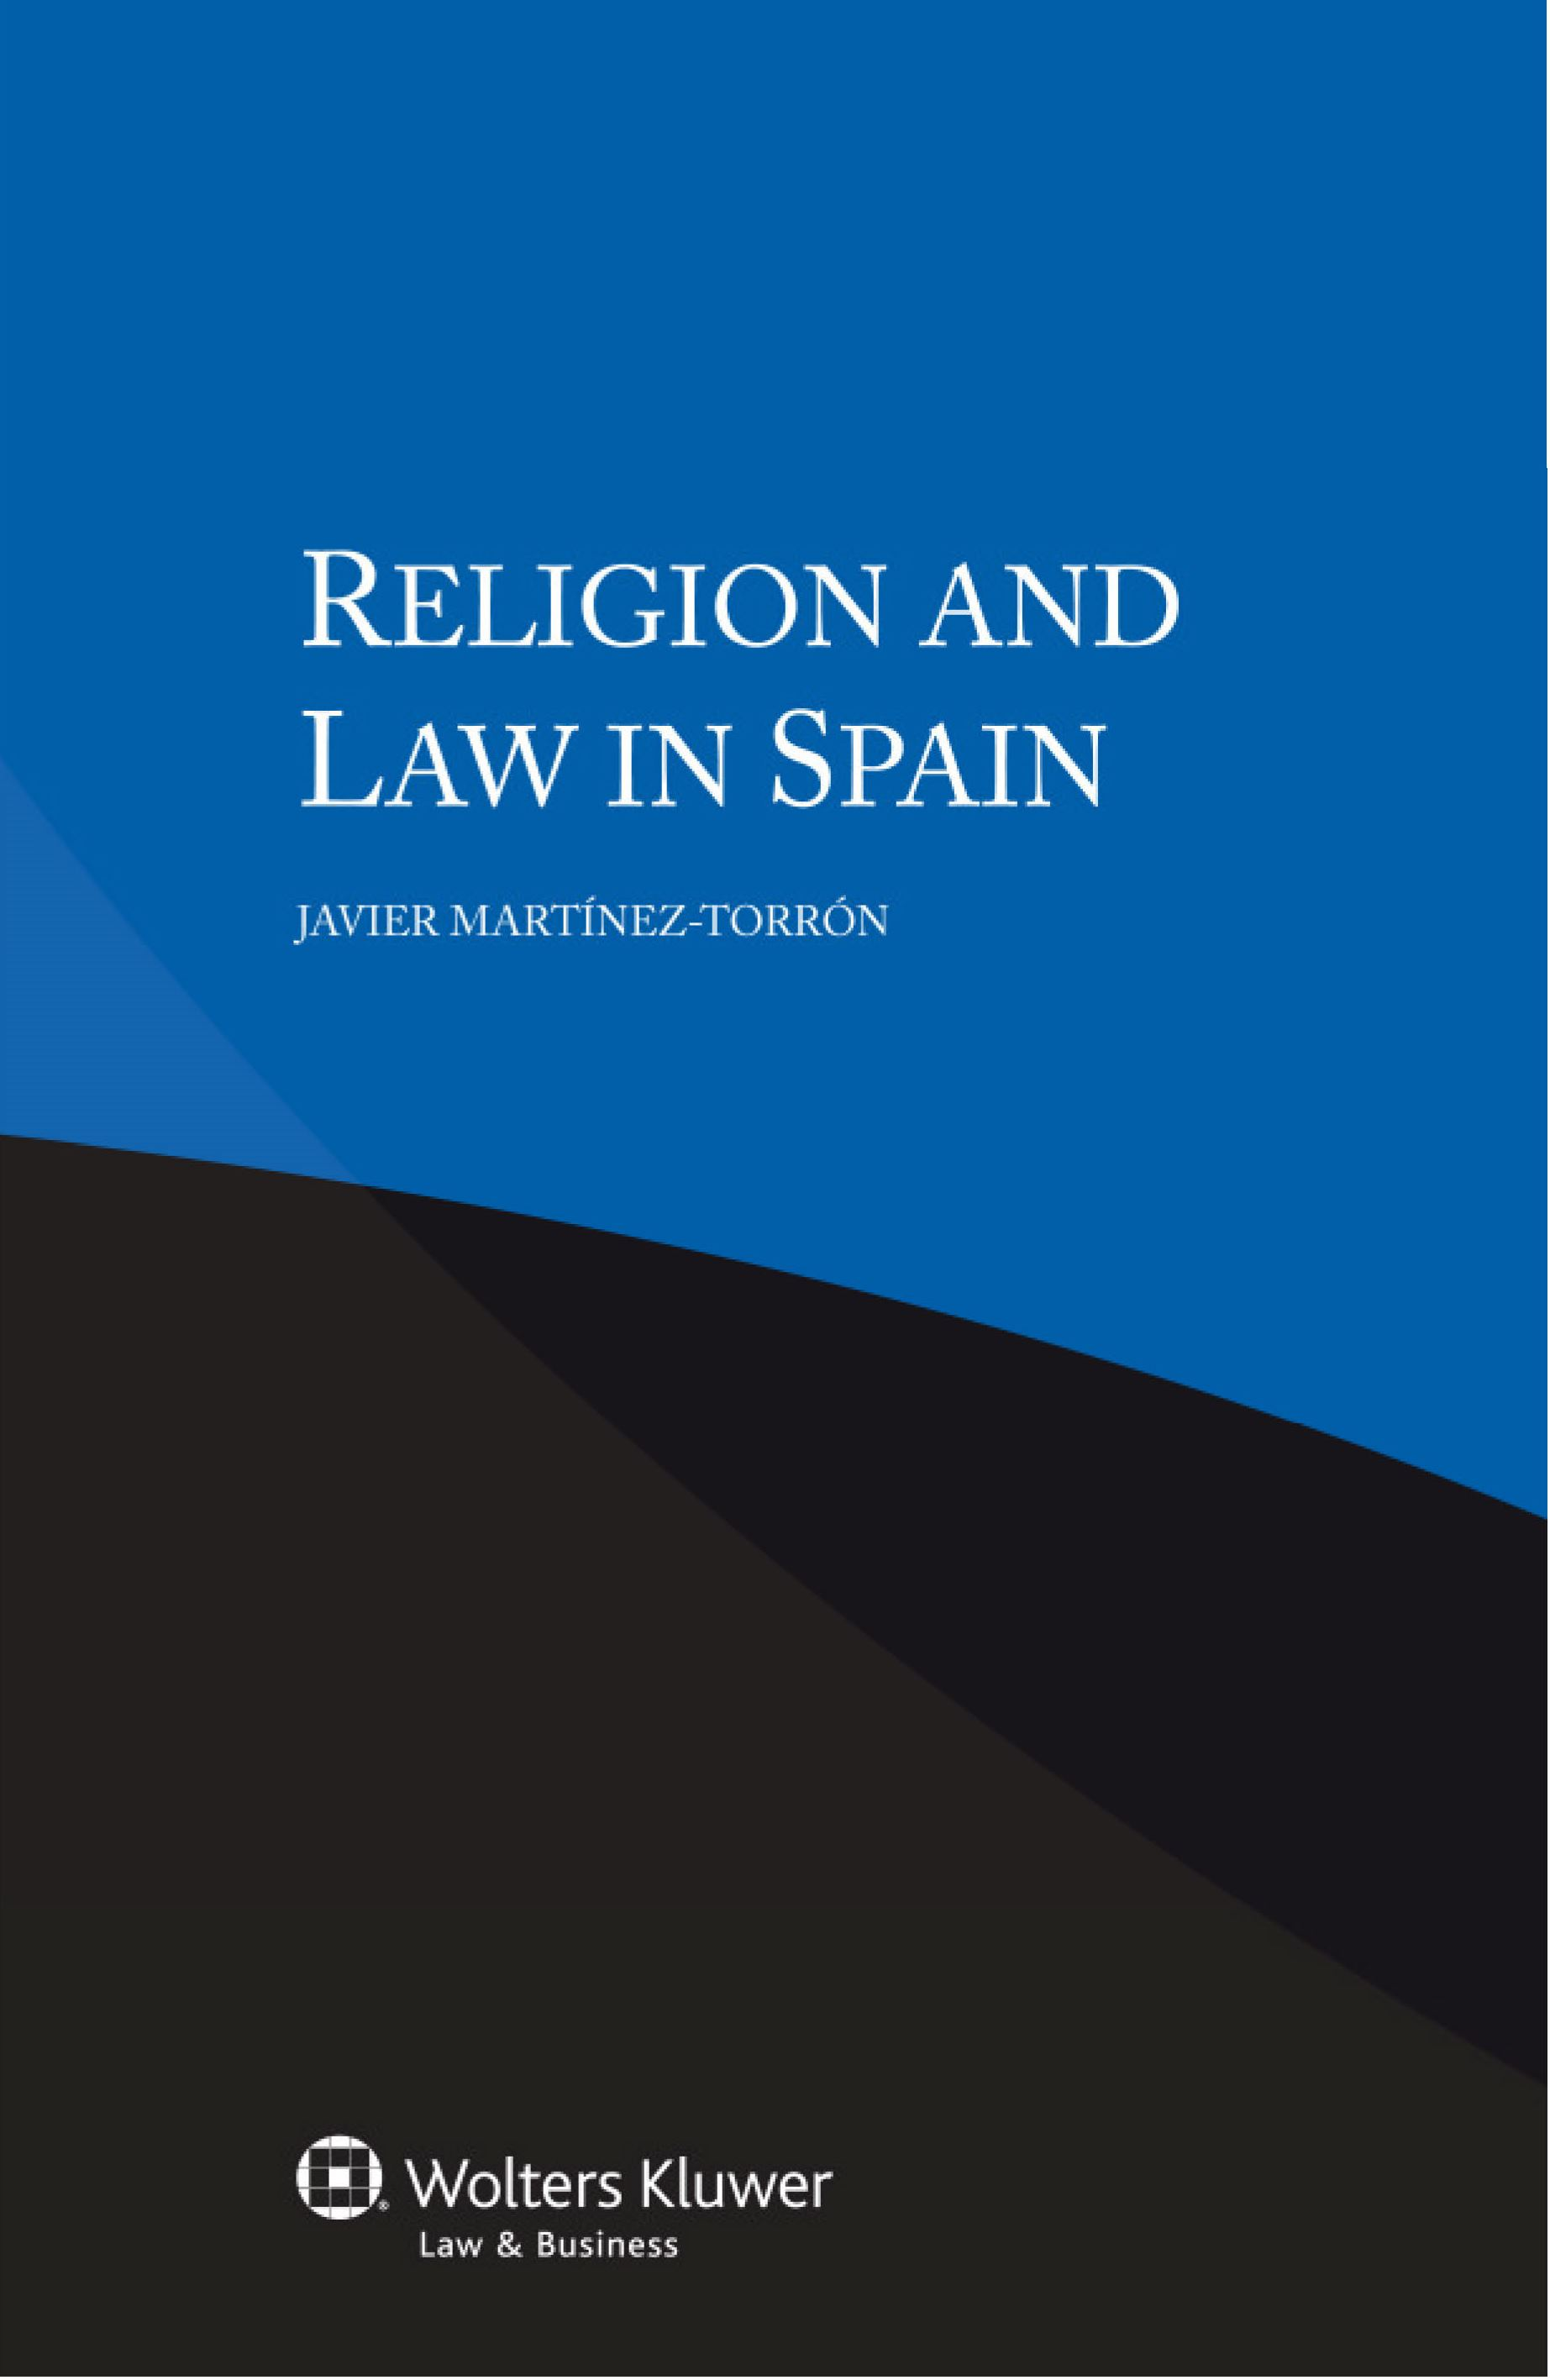 Religion and the constitution third edition aspen casebook image for religion and law in spain fandeluxe Image collections